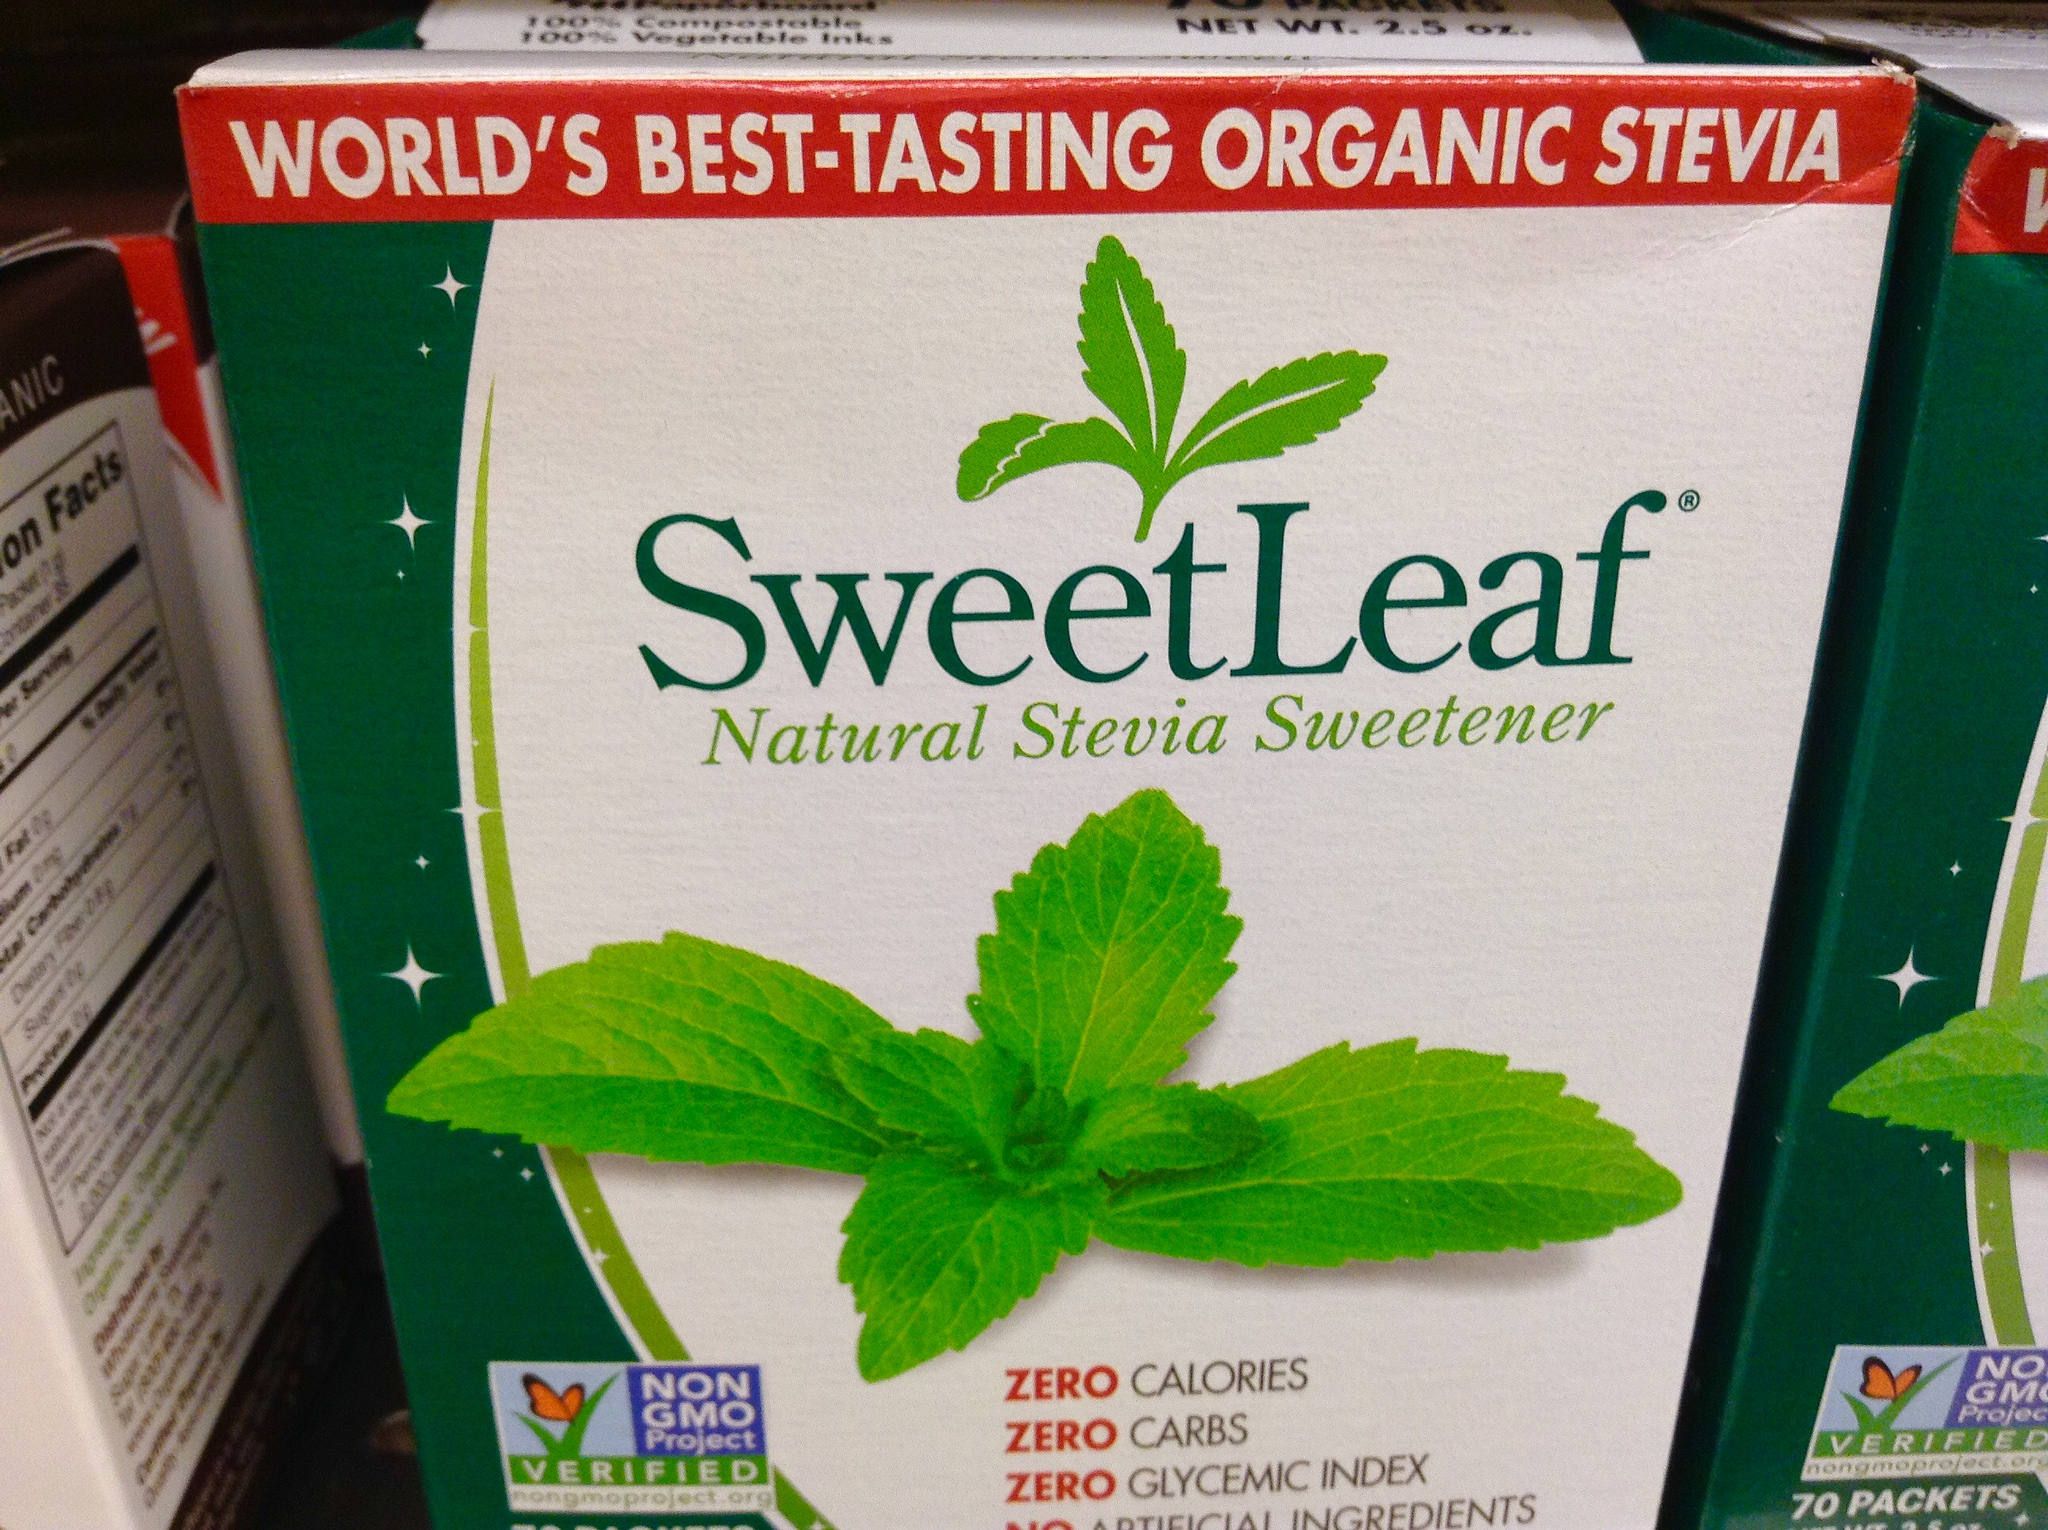 """Photo shows a box of SweetLeaf stevia sweetener, with front-of-package labels """"world's best-tasting organic stevia,"""" """"Natural Stevia Sweetener,"""" """"ZERO calories, ZERO carbs, ZERO glycemic index,"""" as well as a Non-GMO Project l"""